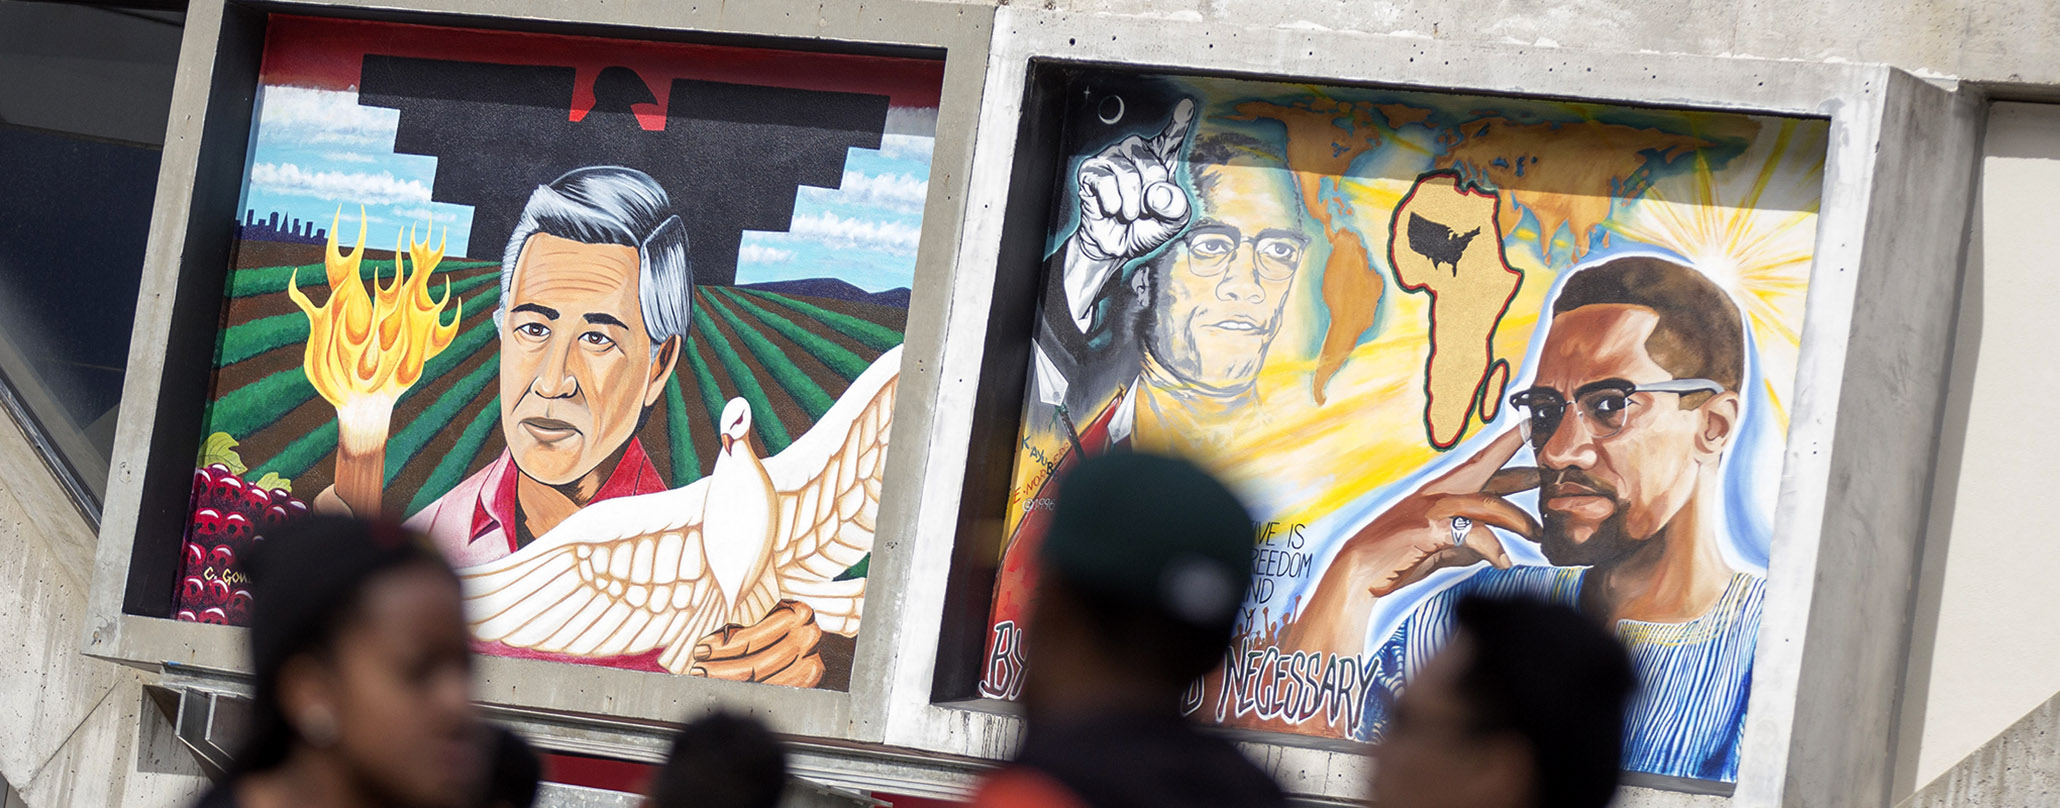 Students talking near murals of Cesar Chavez and Malcolm X